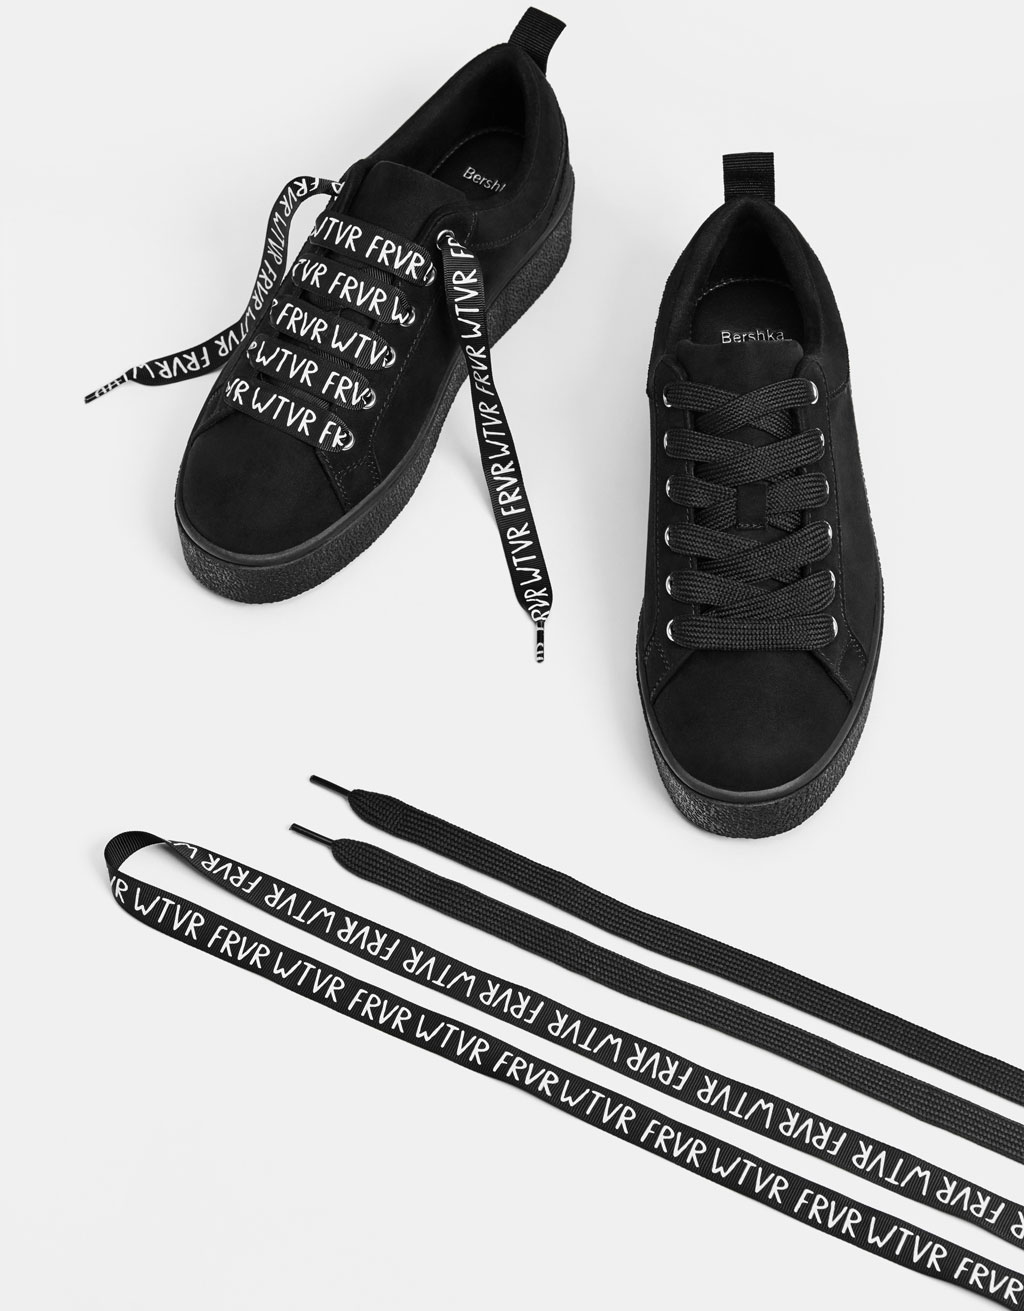 Black monochrome sneakers